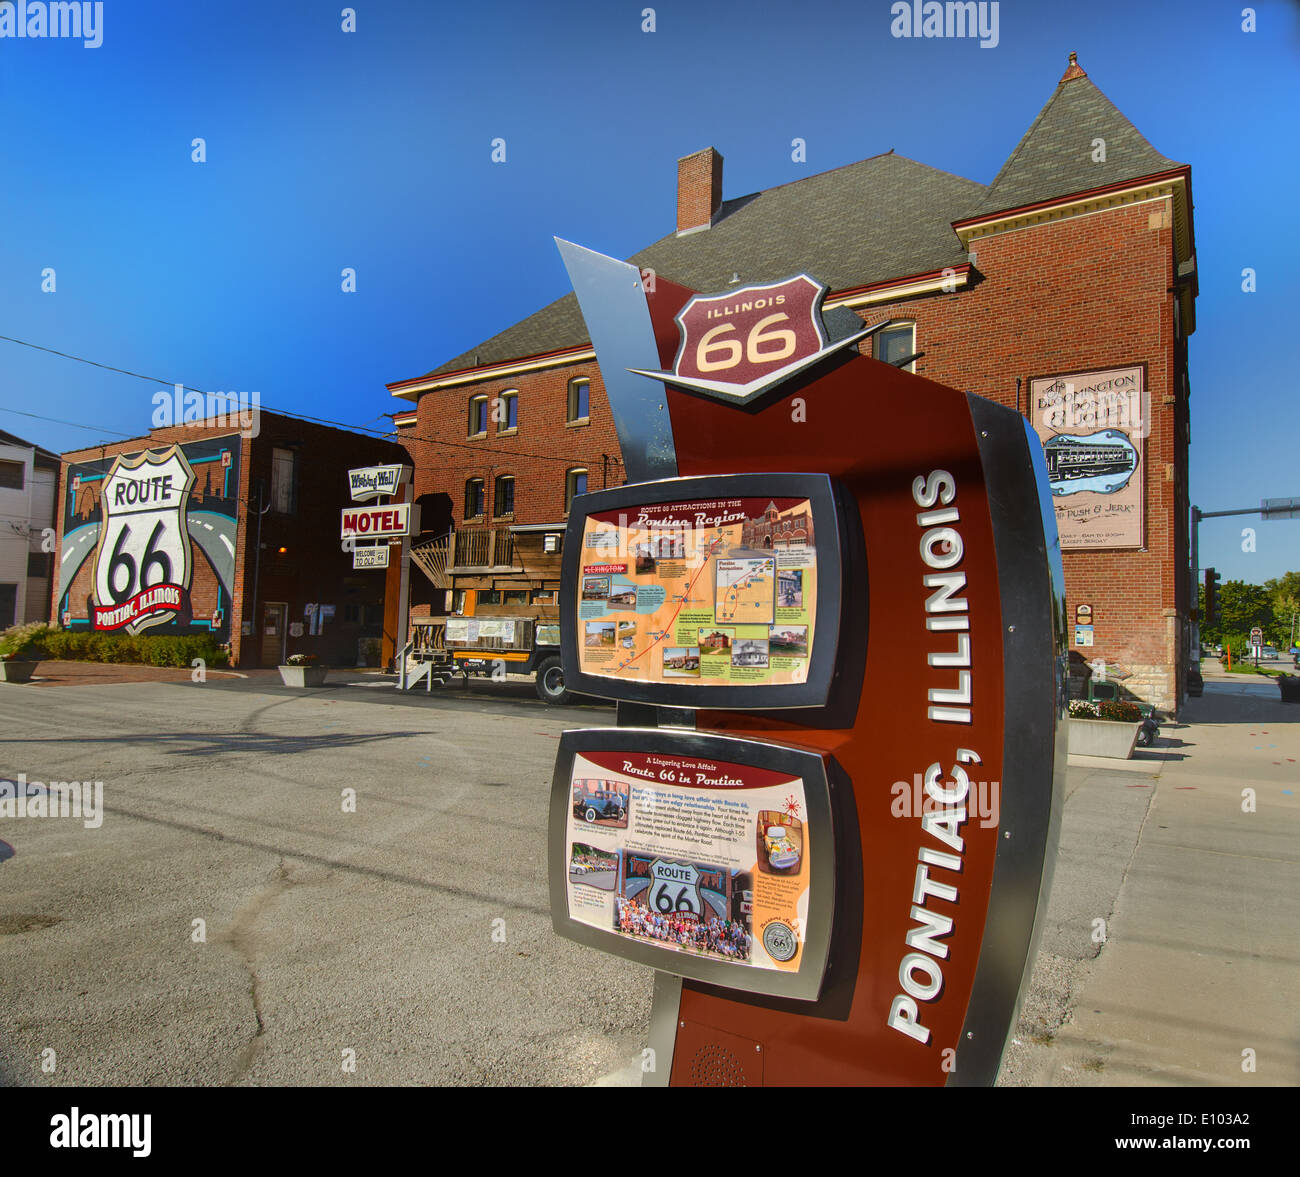 Sign for Route 66 in Pontiac, Illinois - Stock Image